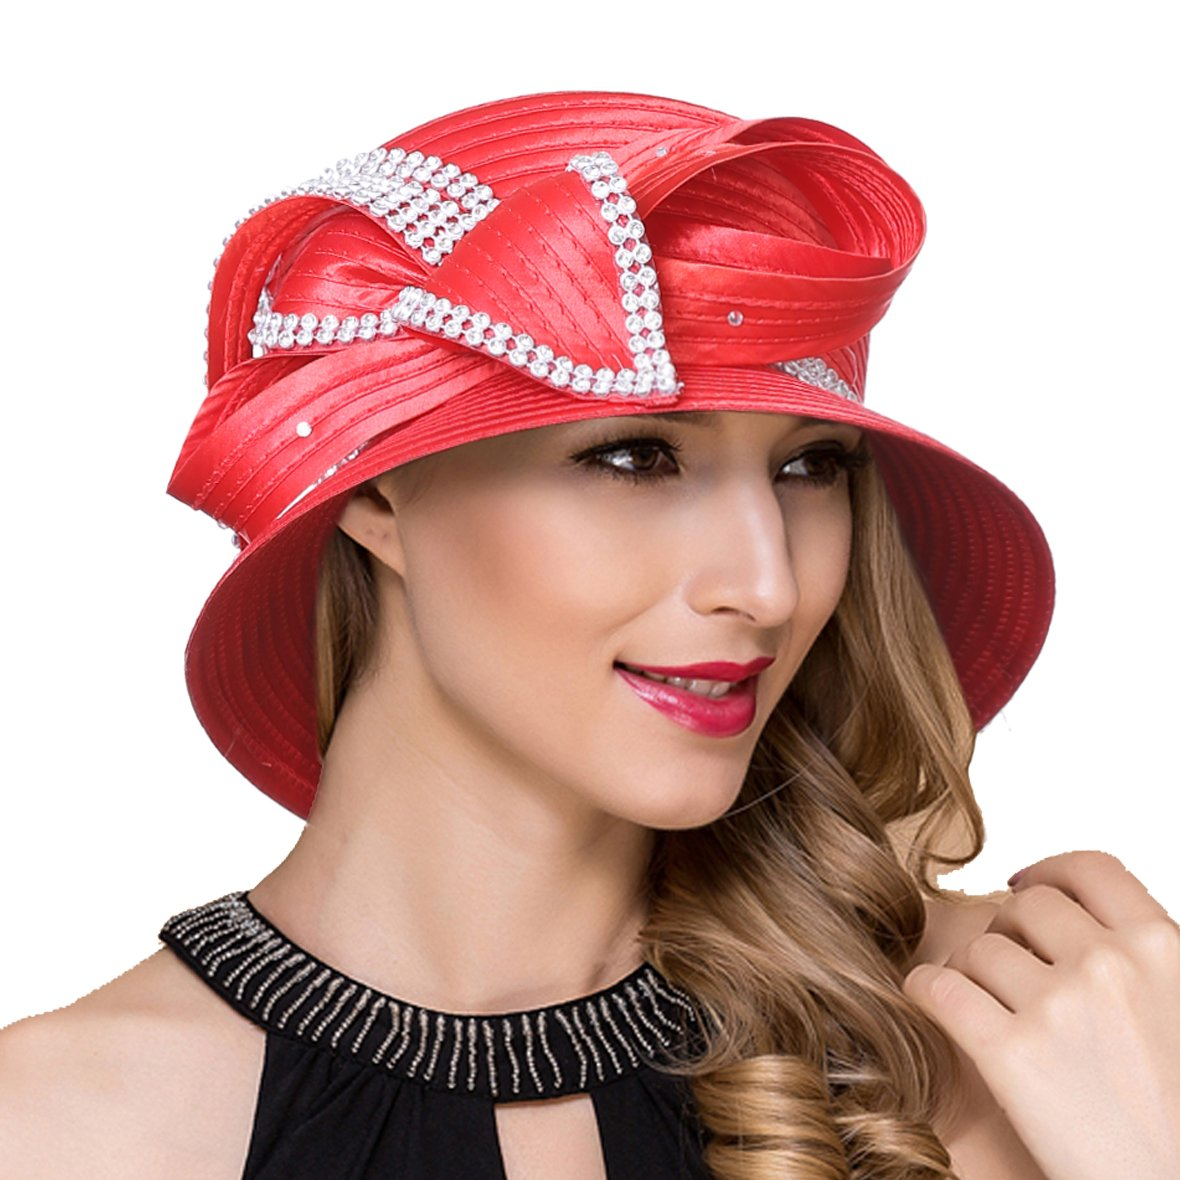 Women Kentucky Derby Church Dress Cloche Hat Fascinator Floral Tea Party Wedding Bucket Hat S052 (SD707-Red)